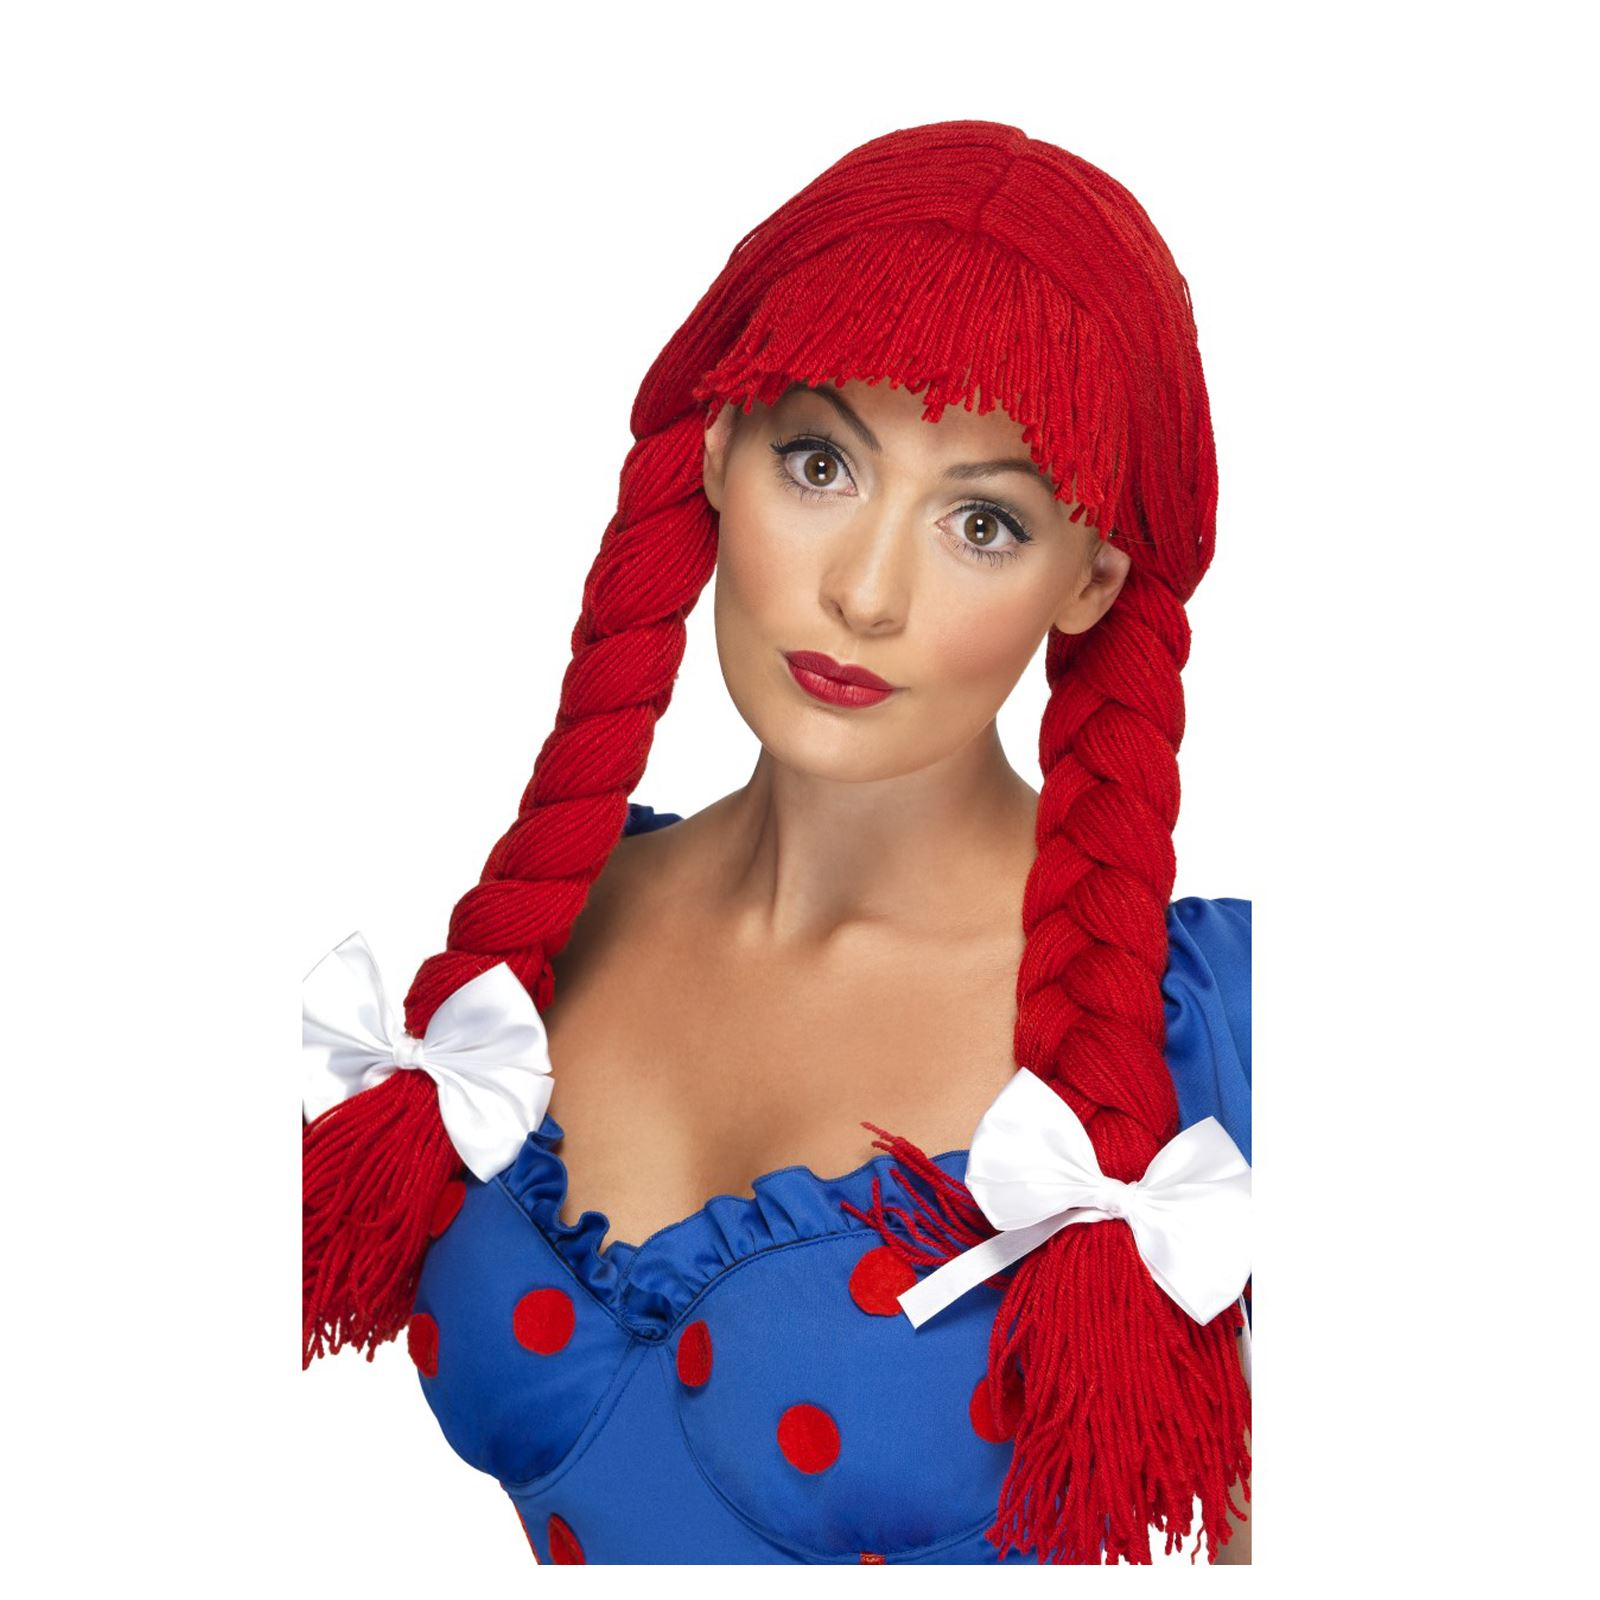 Ladies Red Rag Doll Plaited Wig with White Bows Childhood Toy Cute Fancy Dress